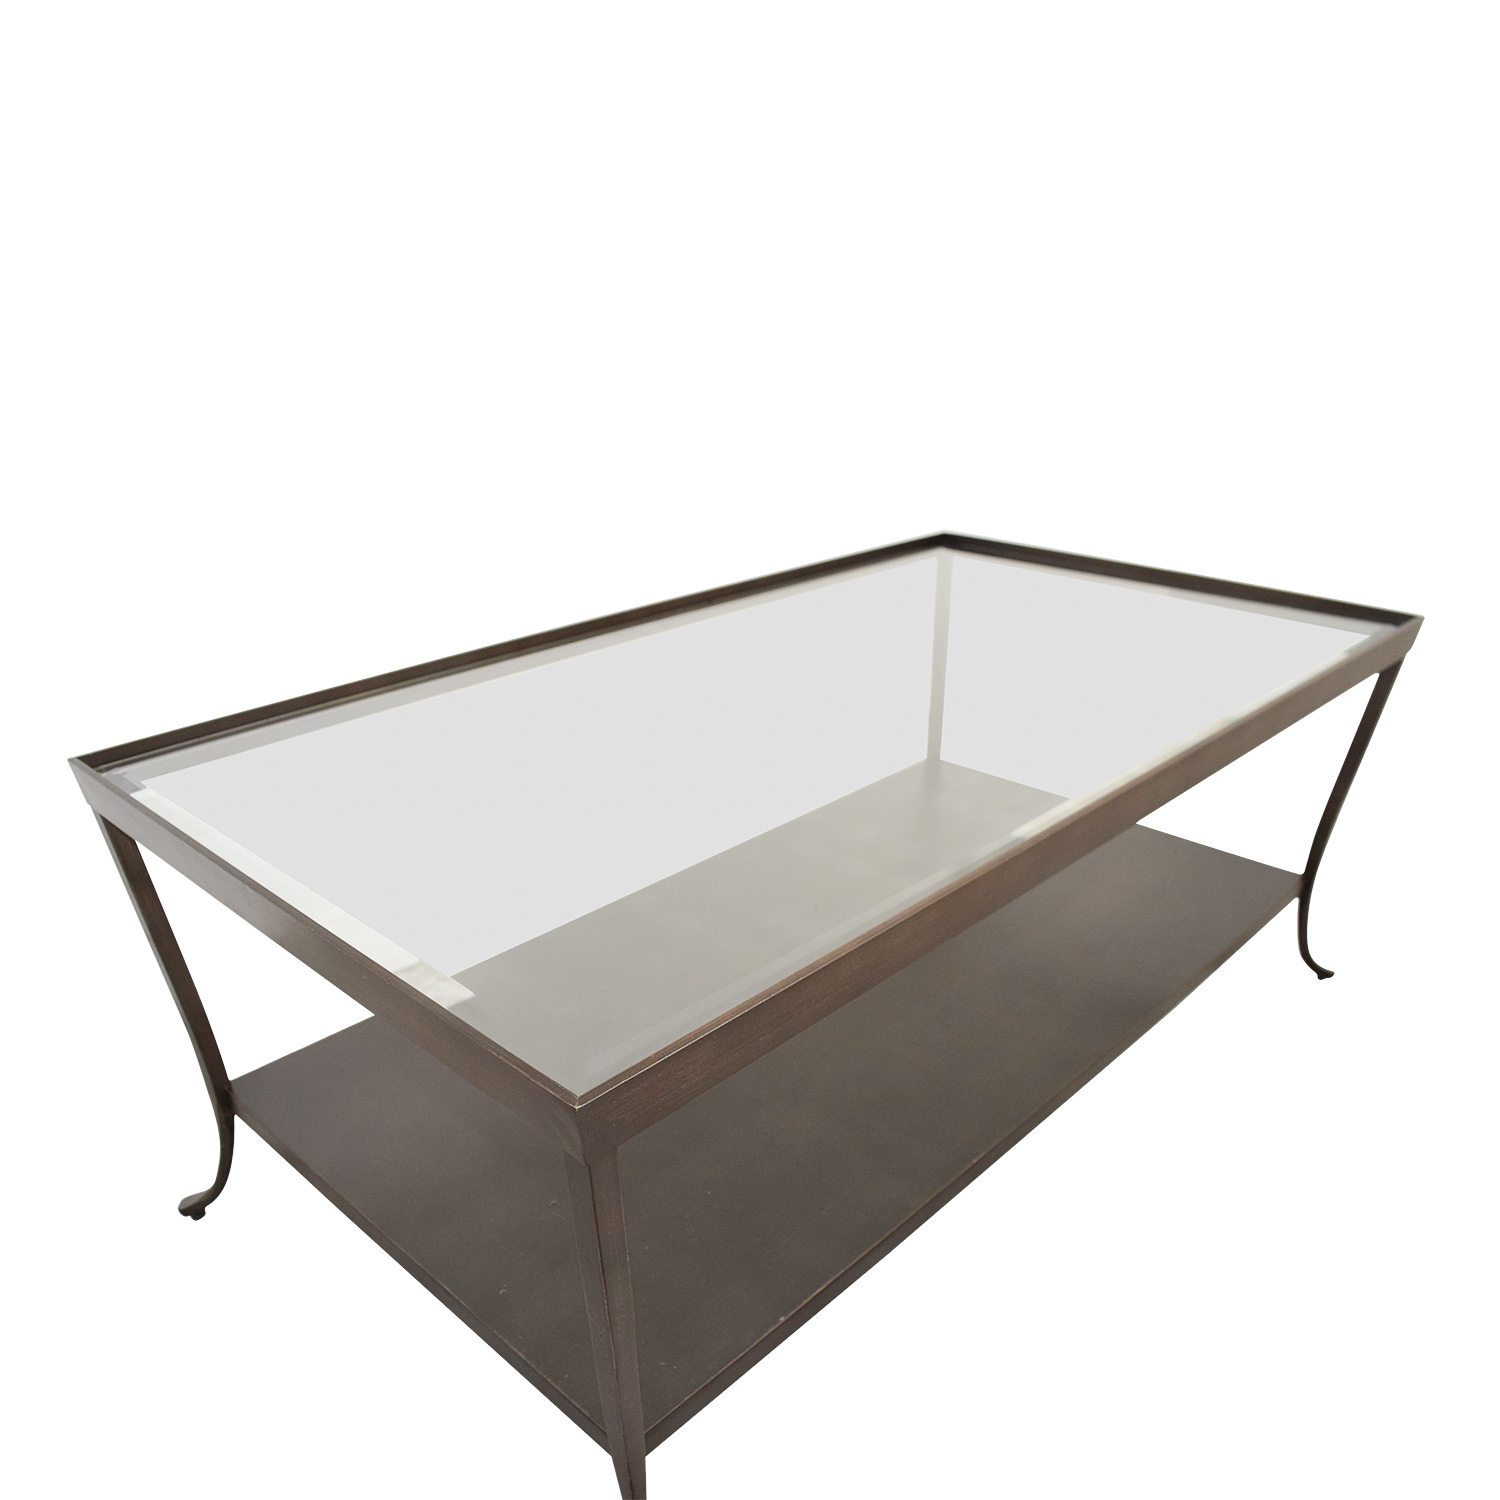 Glass Coffee Table Brass Base: Glass Top Coffee Table With Metal Base / Tables